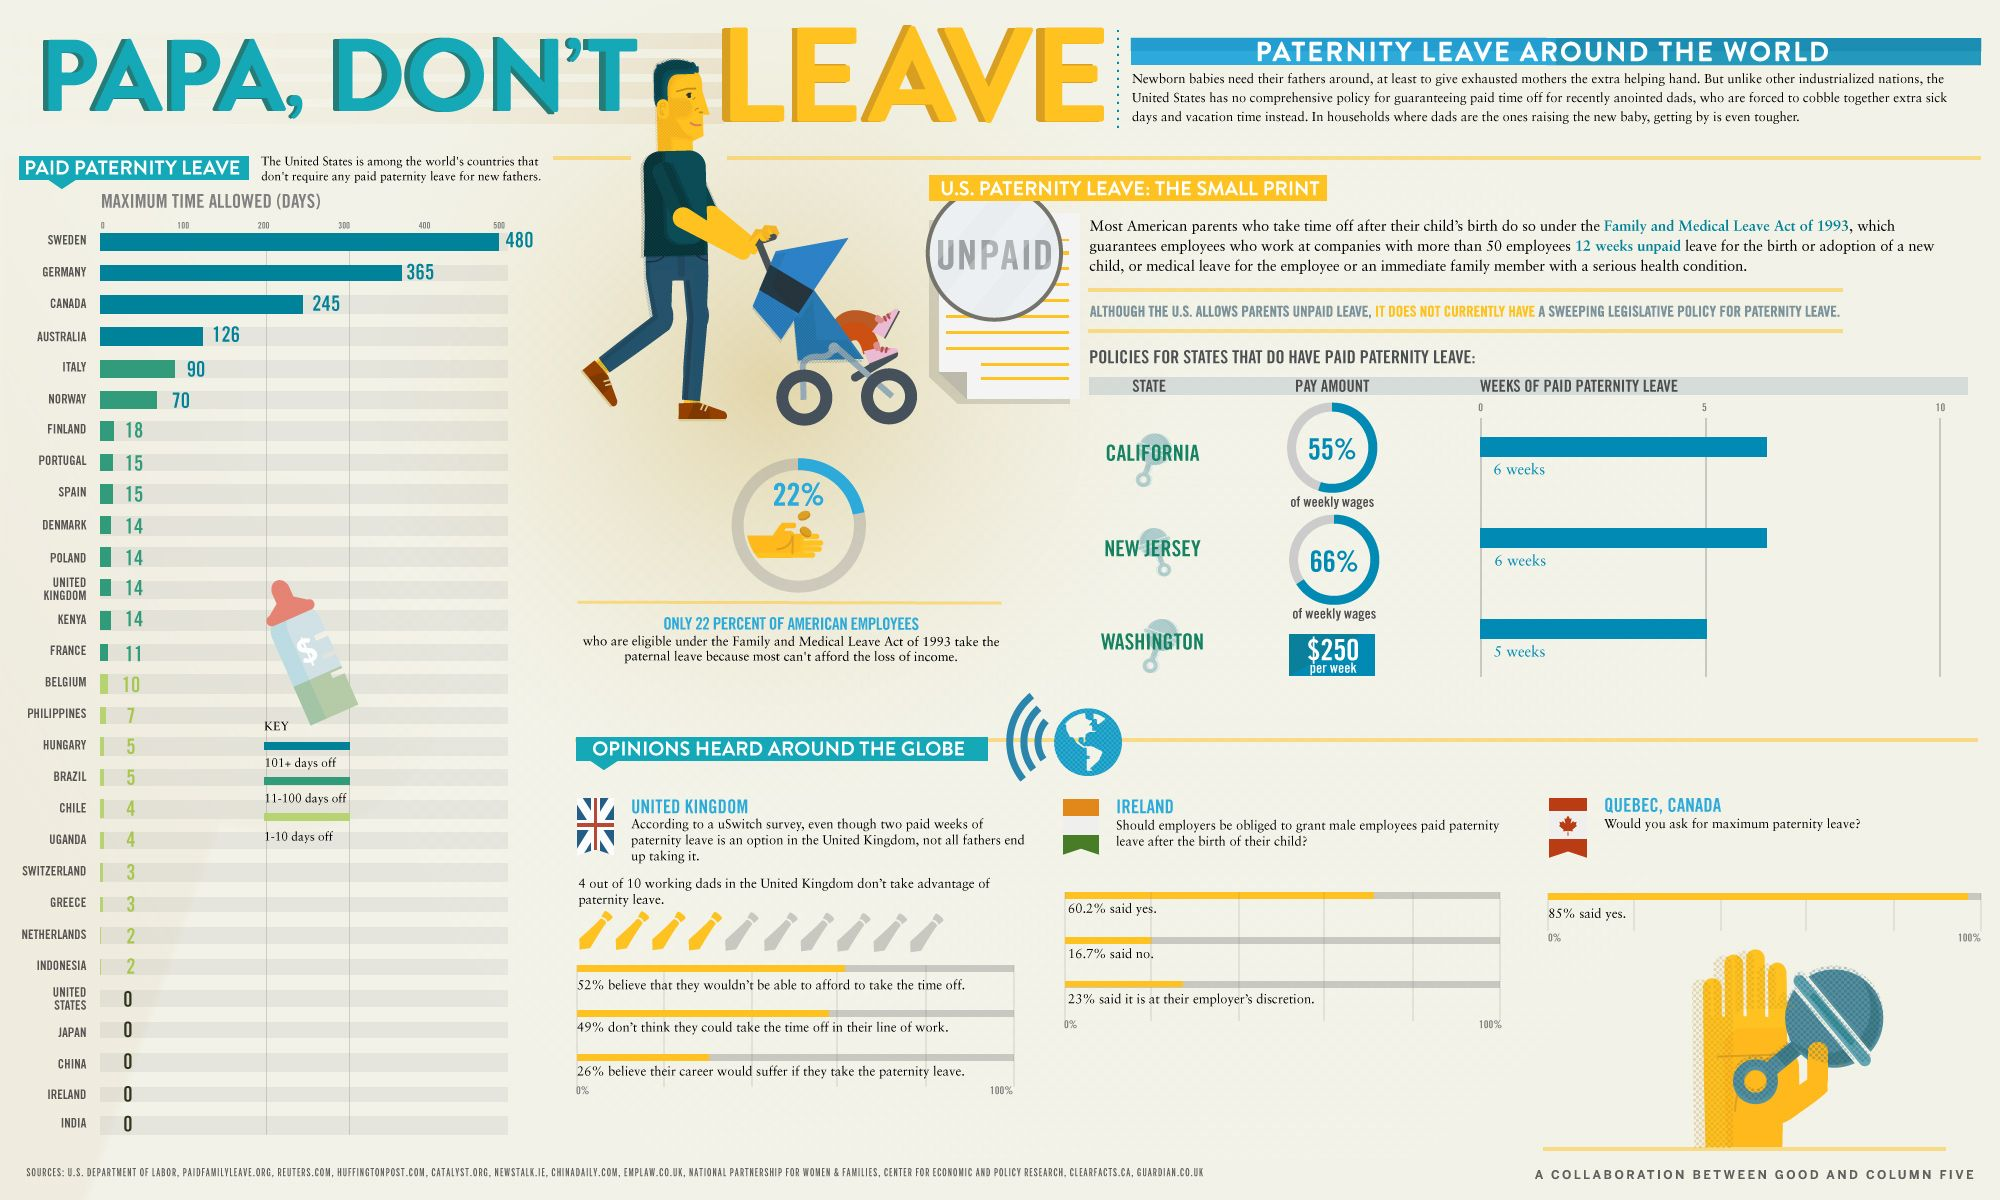 Infographic paternity leave around the world